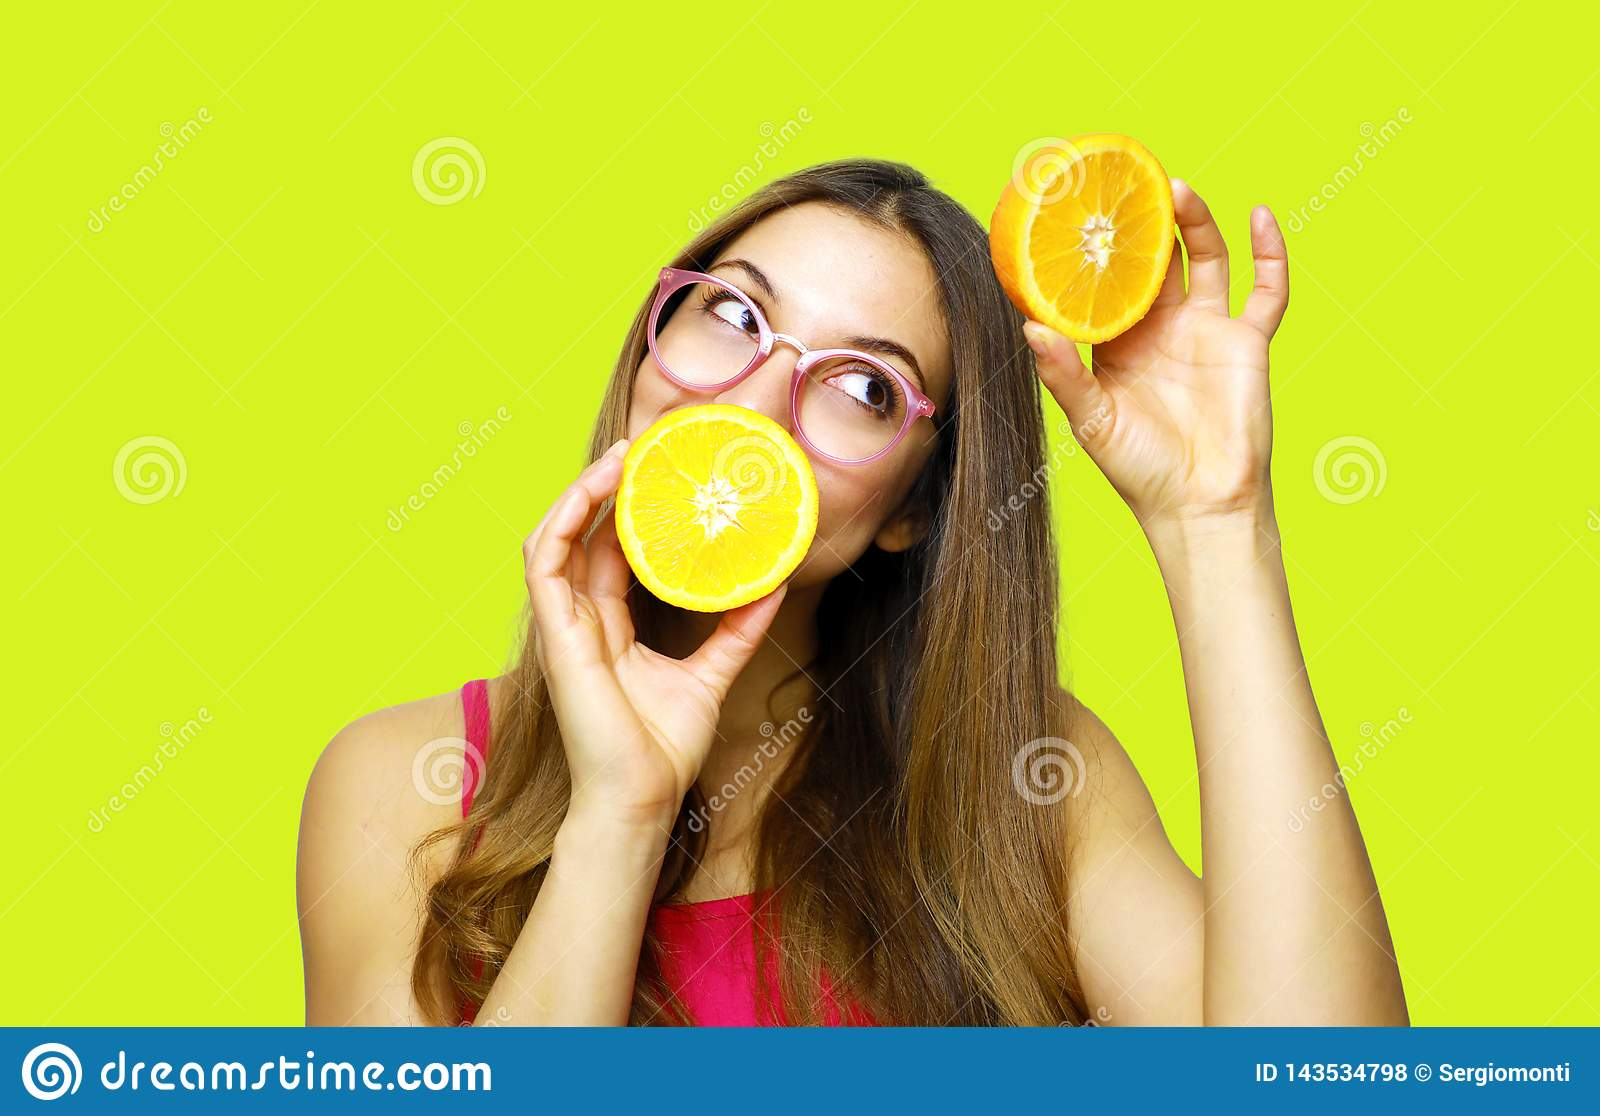 Portrait of funny happy girl holding halves of orange near face